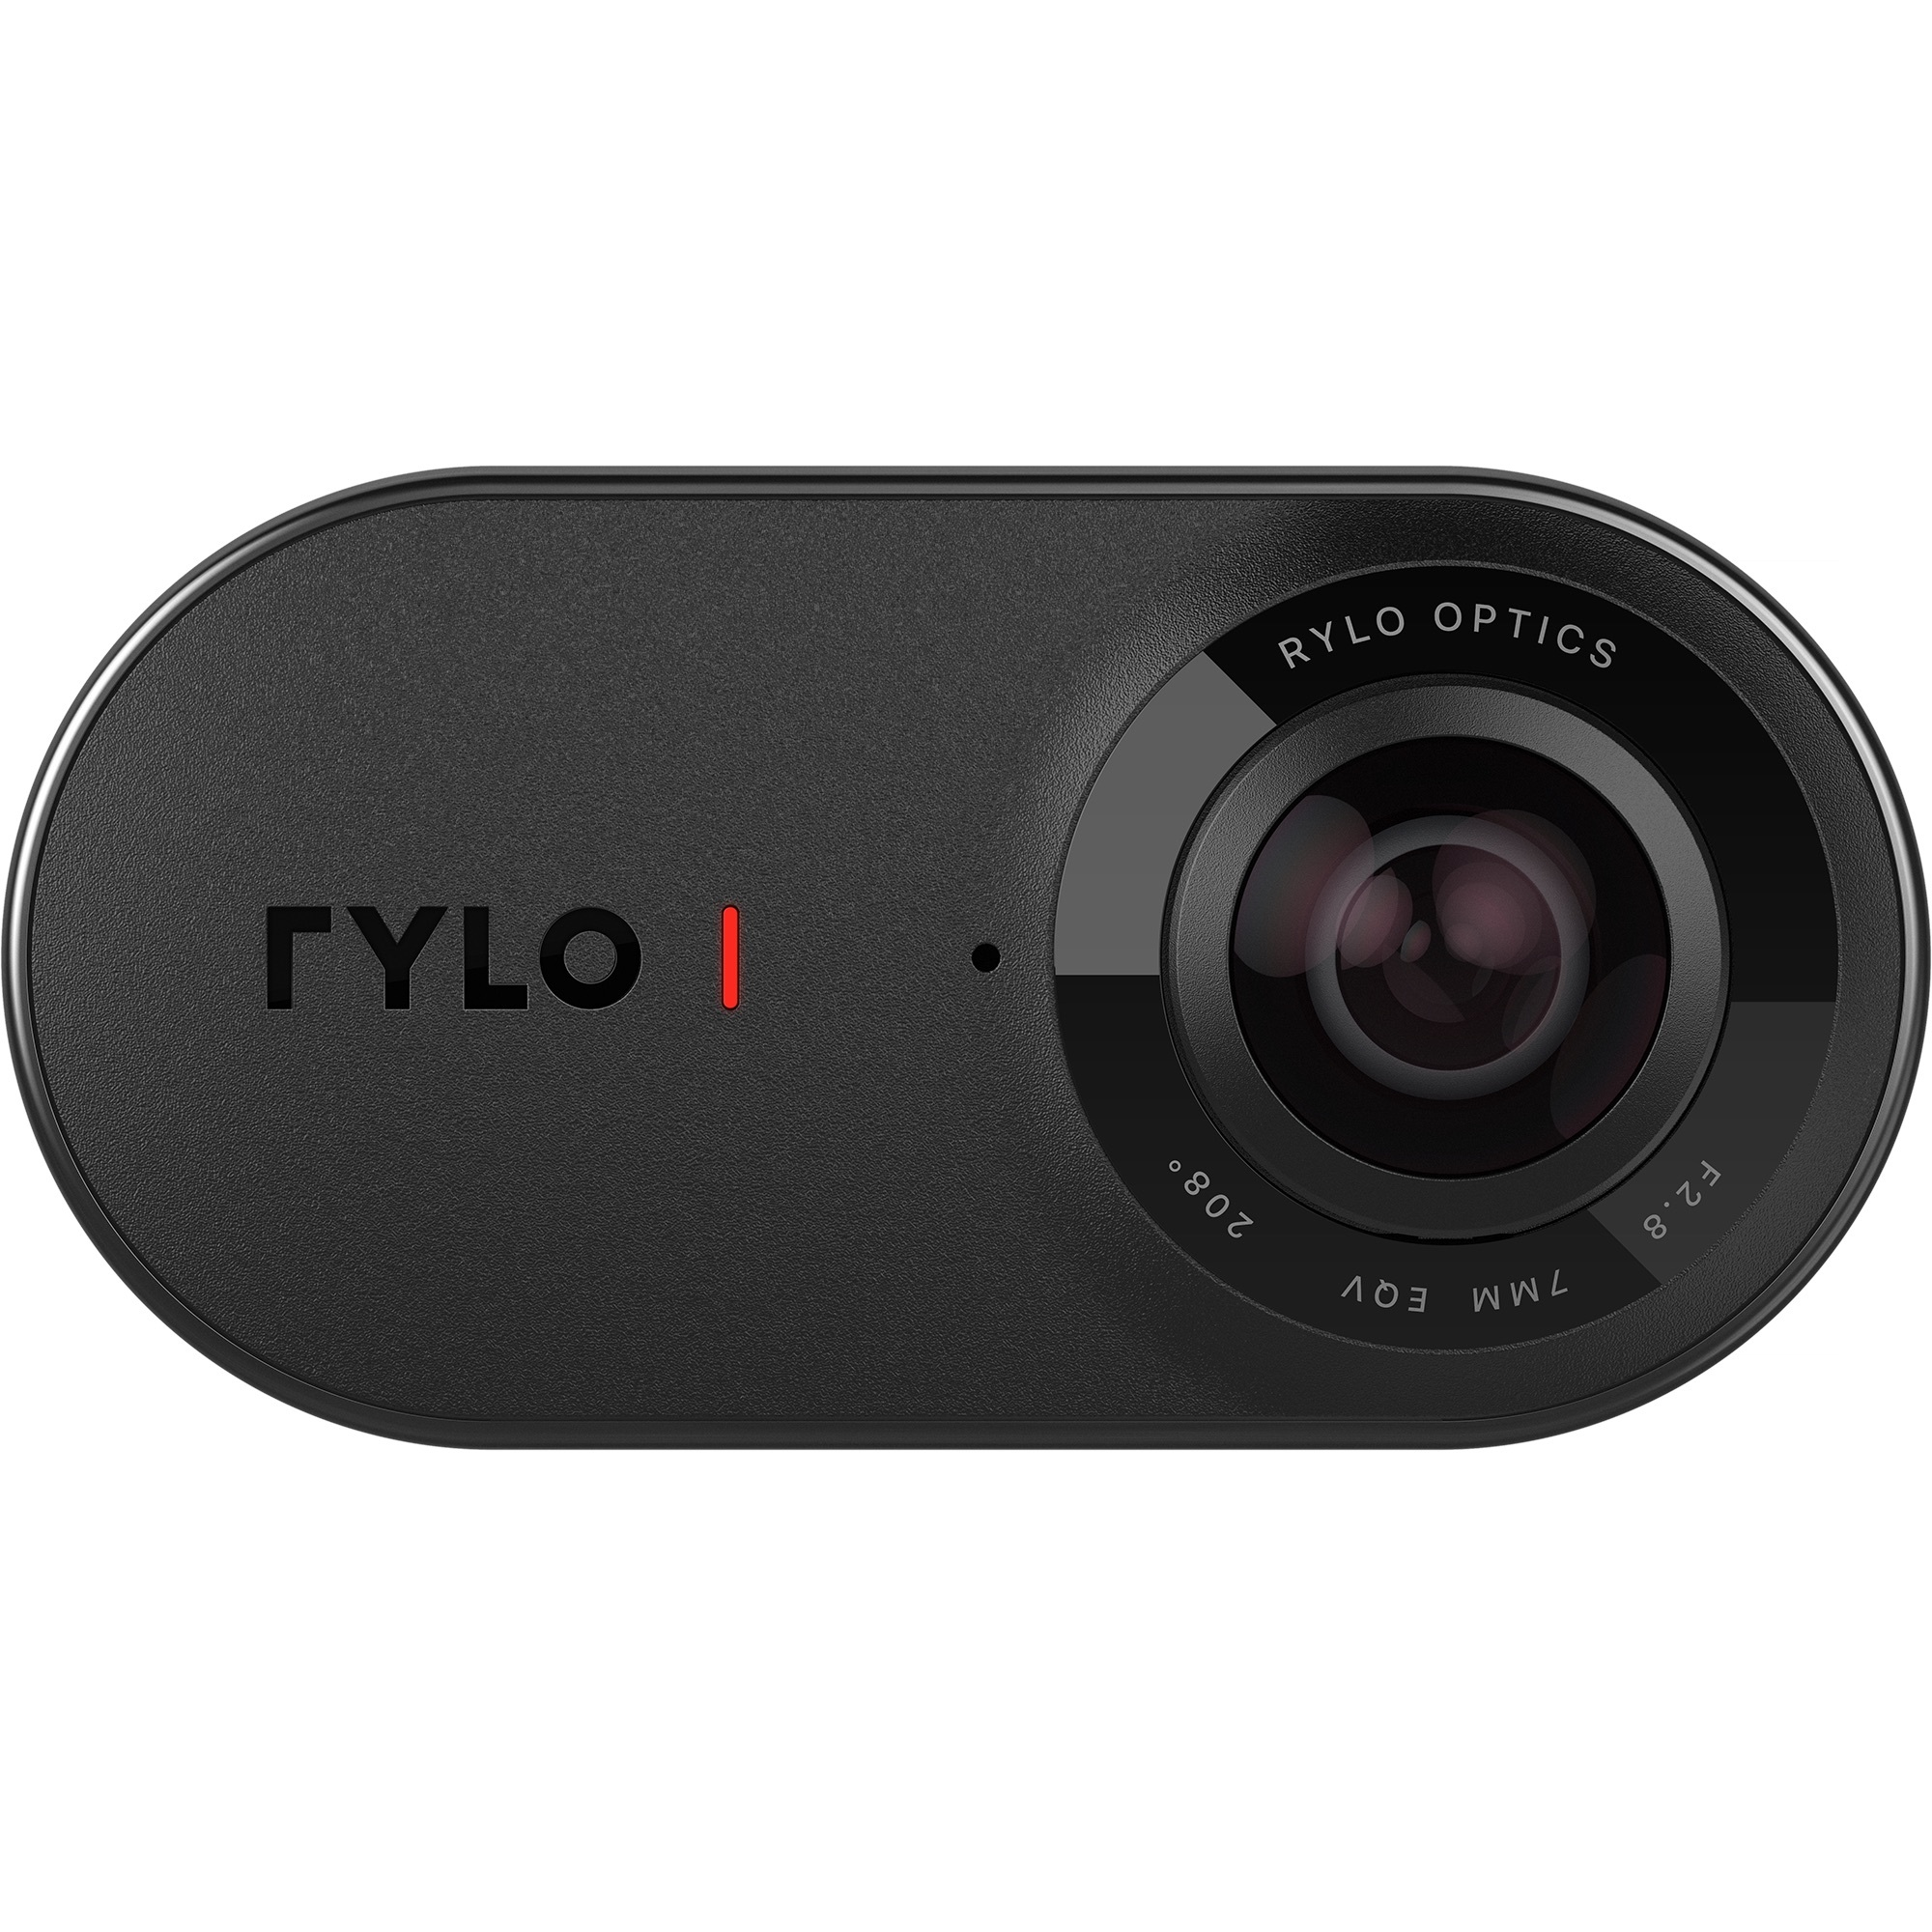 Former Instagram and Apple Team Launches 360° Camera with